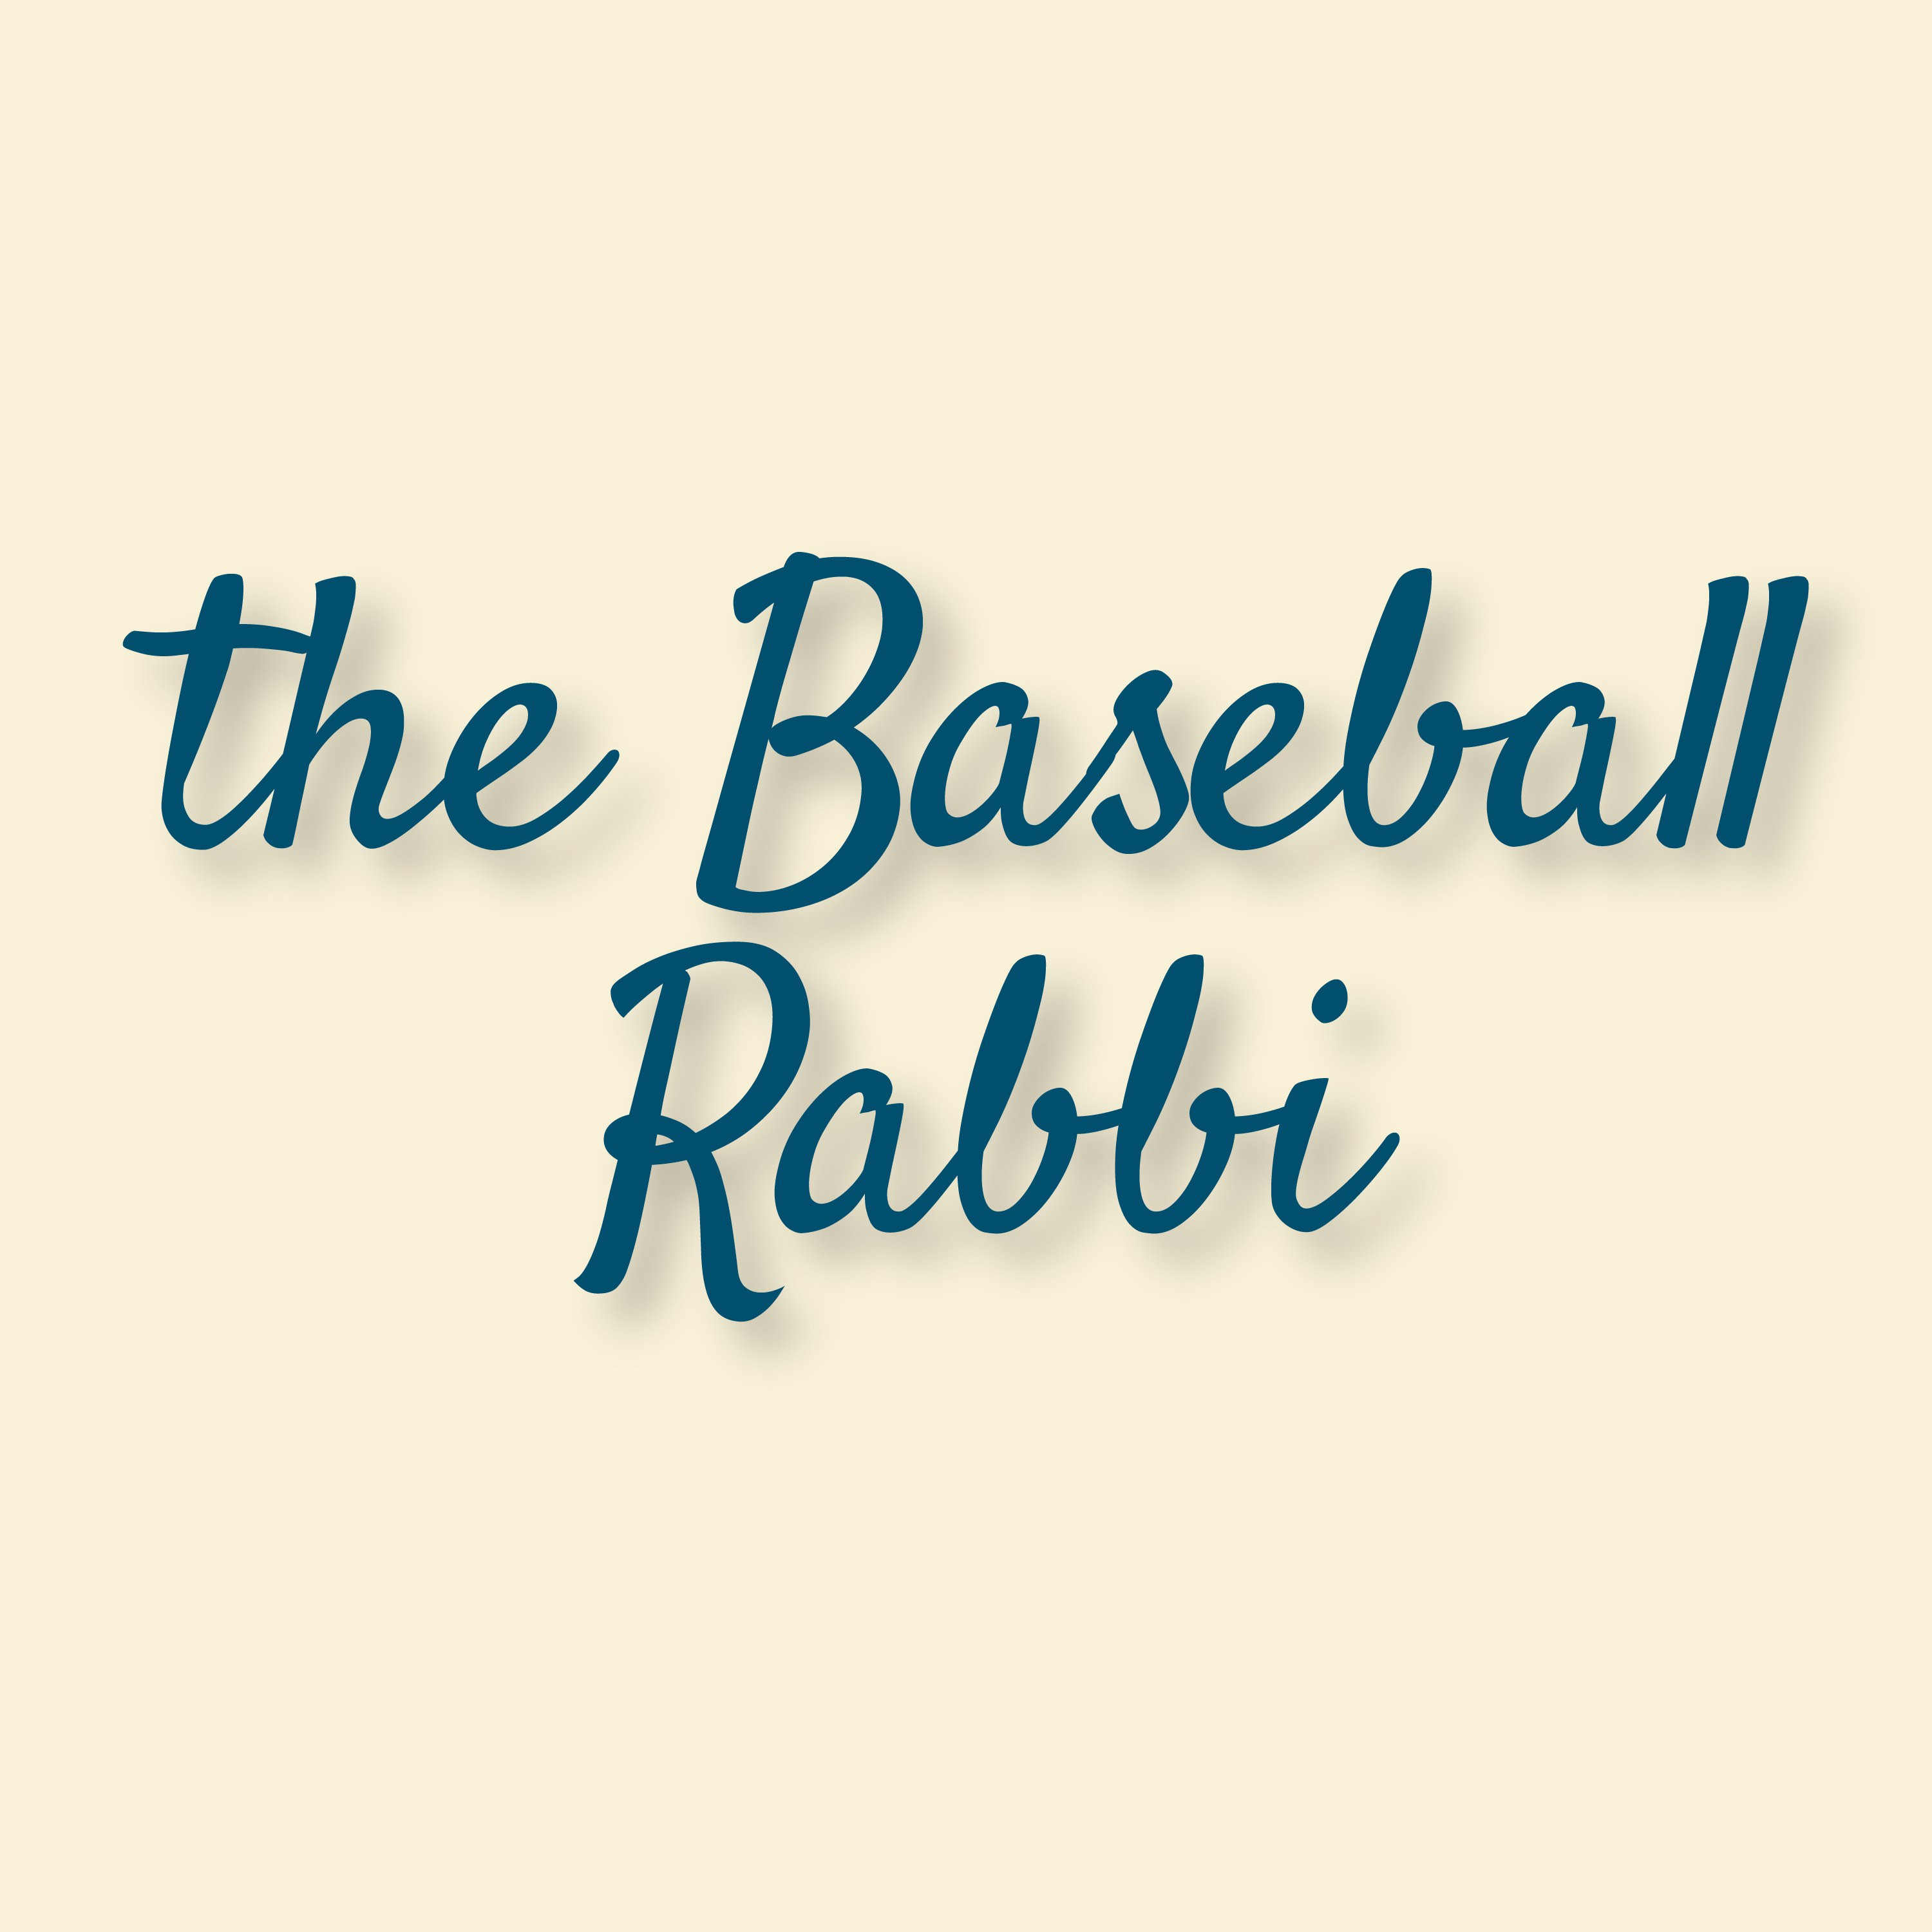 The Baseball Rabbi Podcast show art